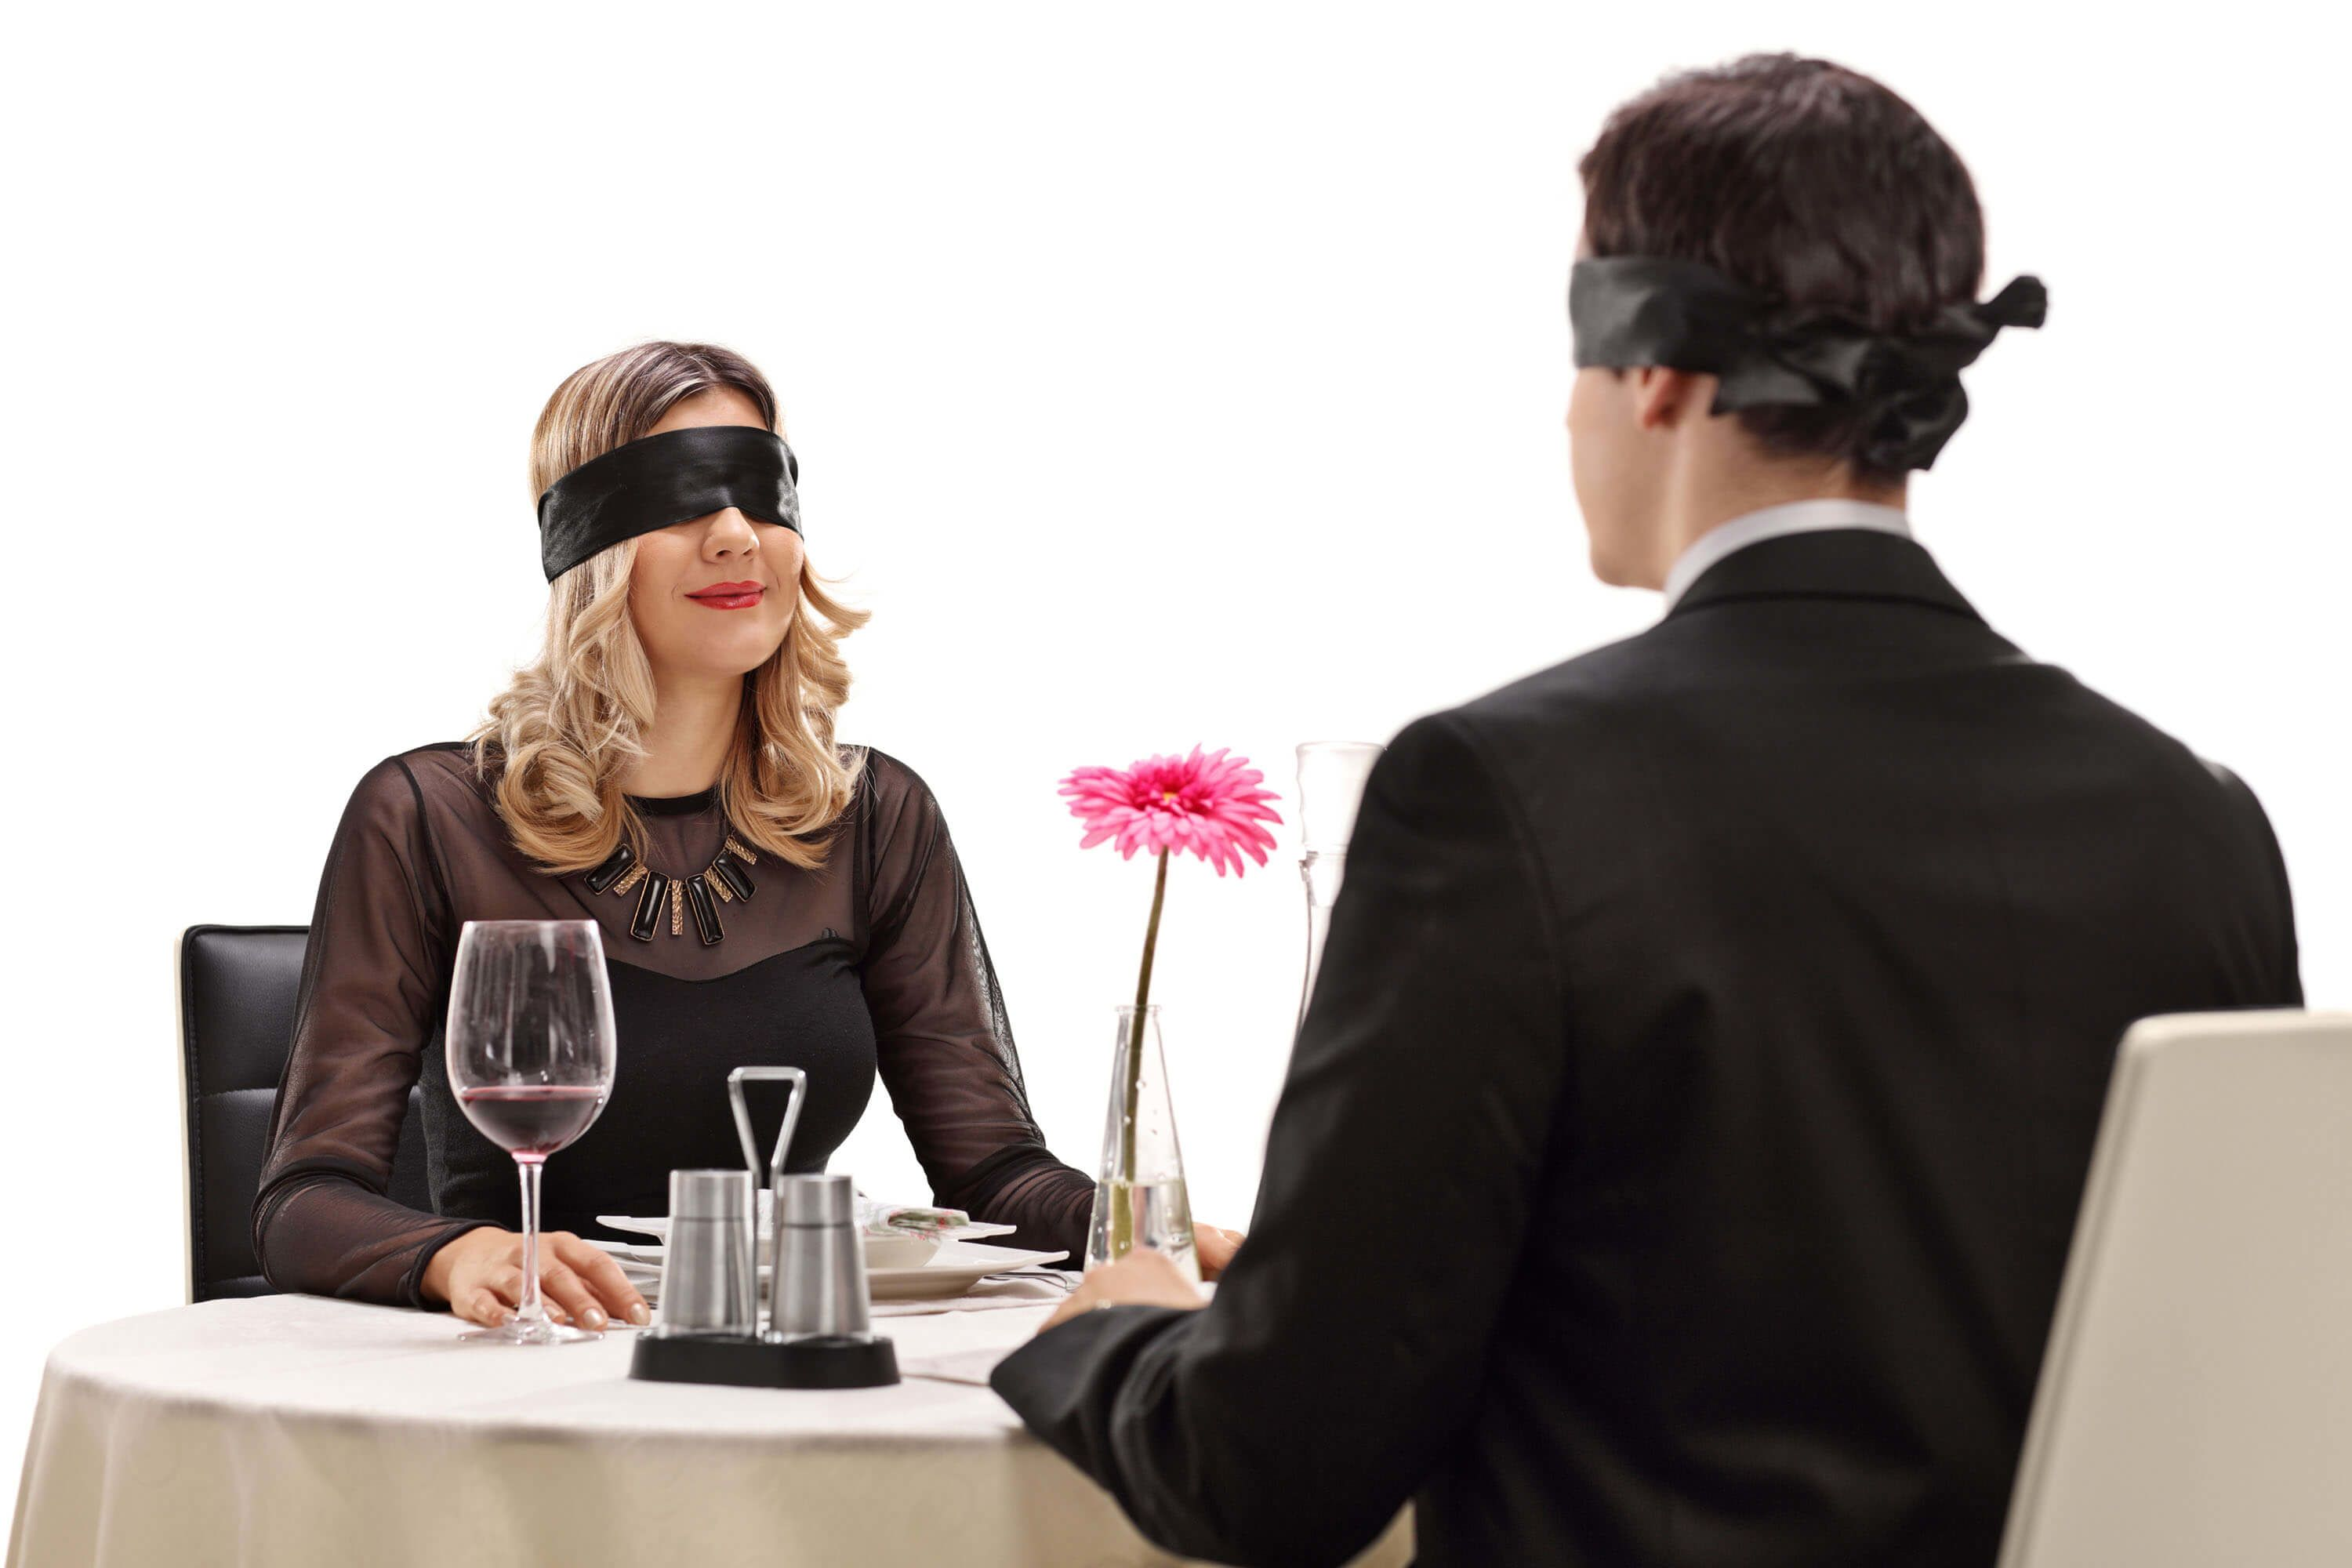 Planning the Perfect Date